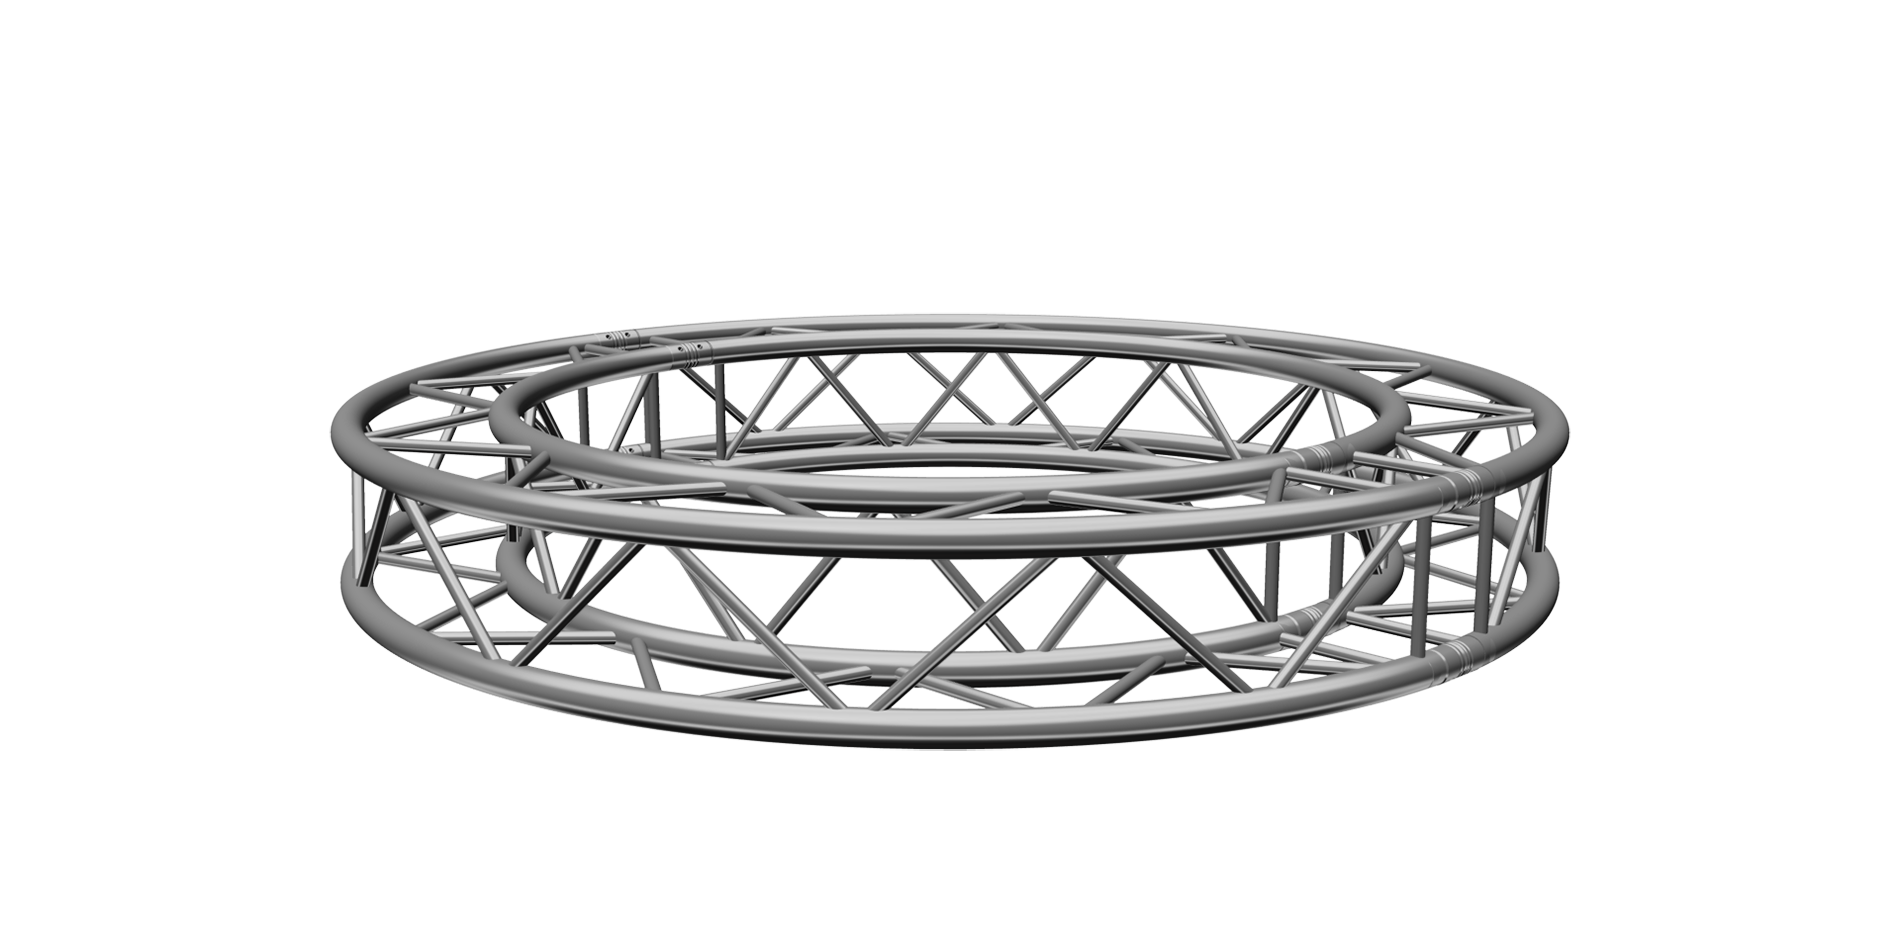 CIRCLETRUSS_HAV.jpg